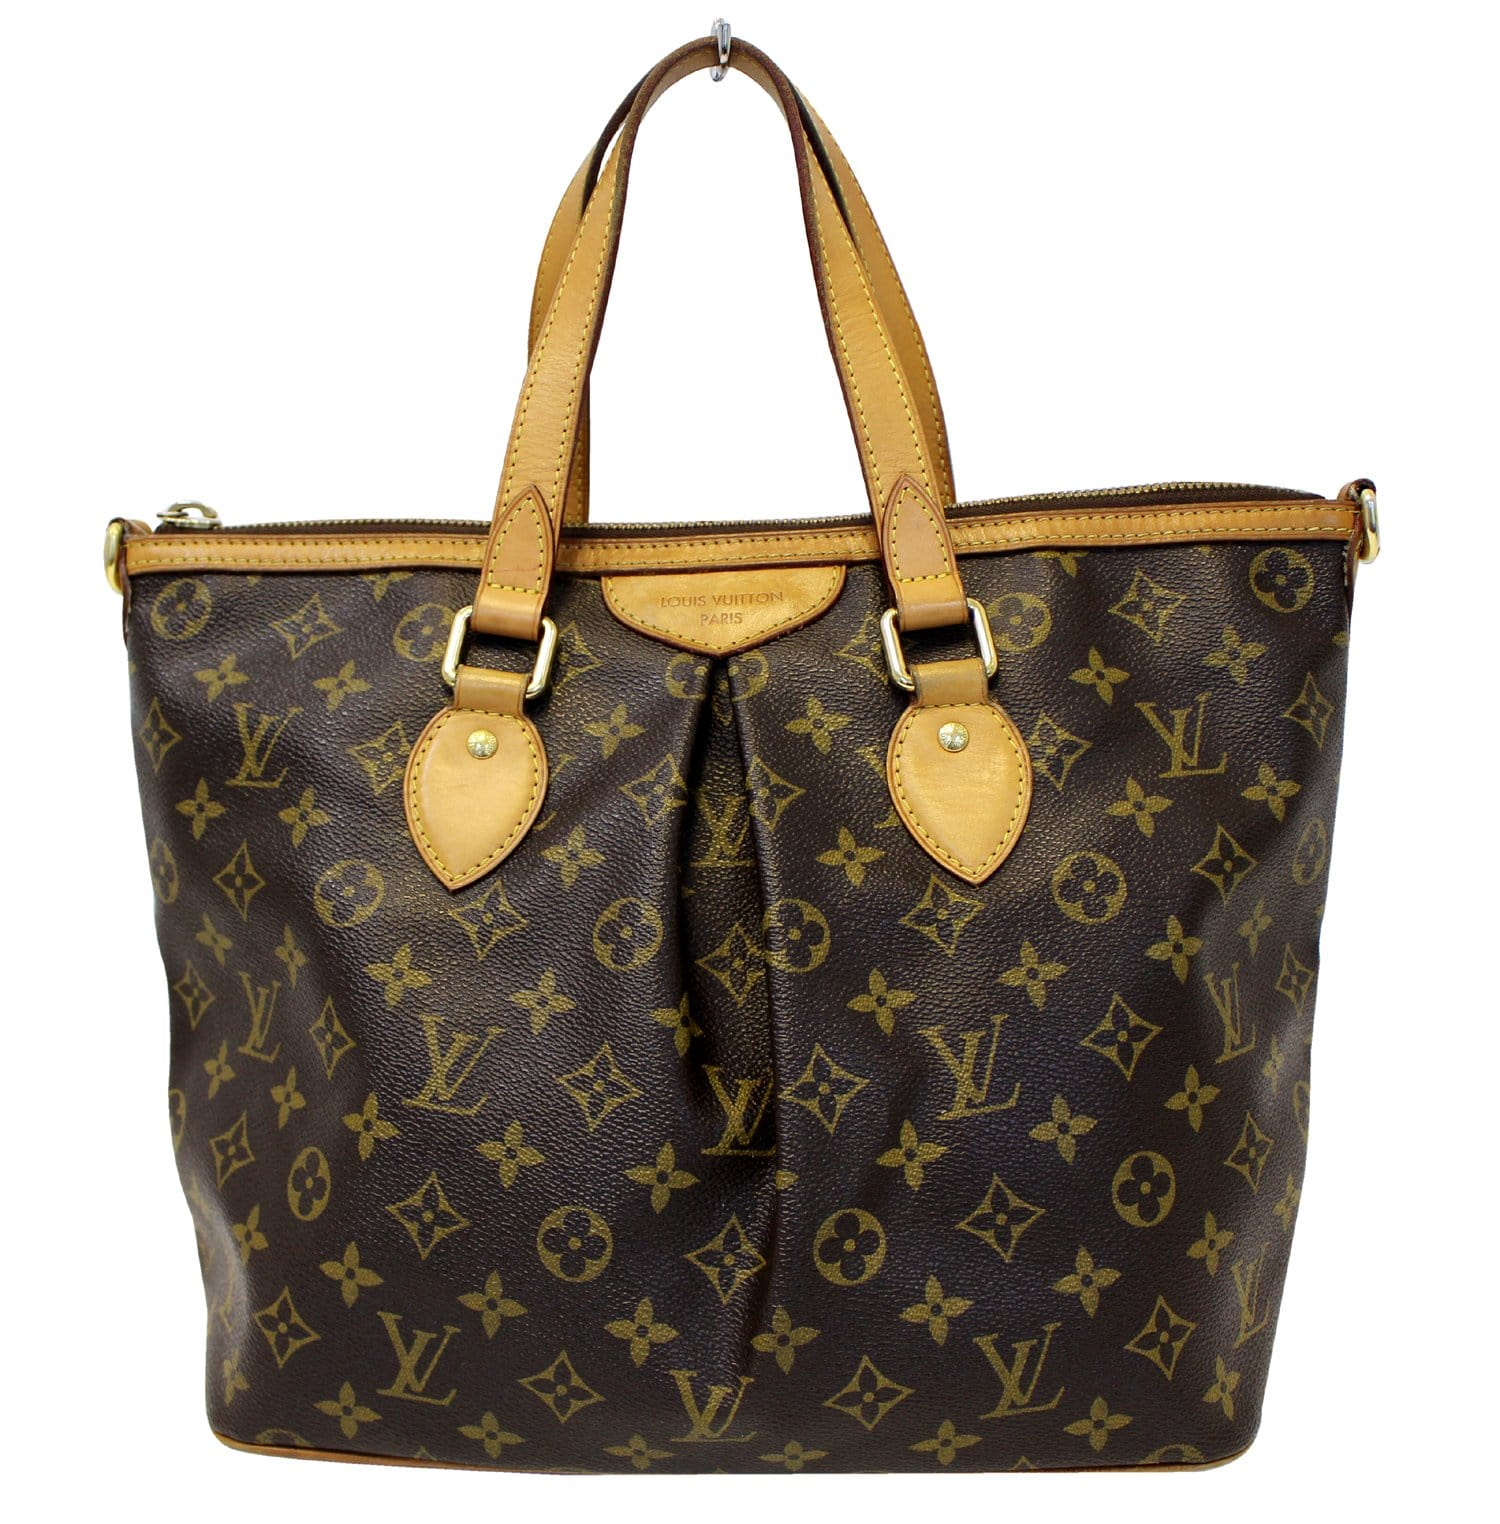 73821eb20f4f Authentic LOUIS VUITTON Monogram Palermo PM Tote Shoulder Bag E3640